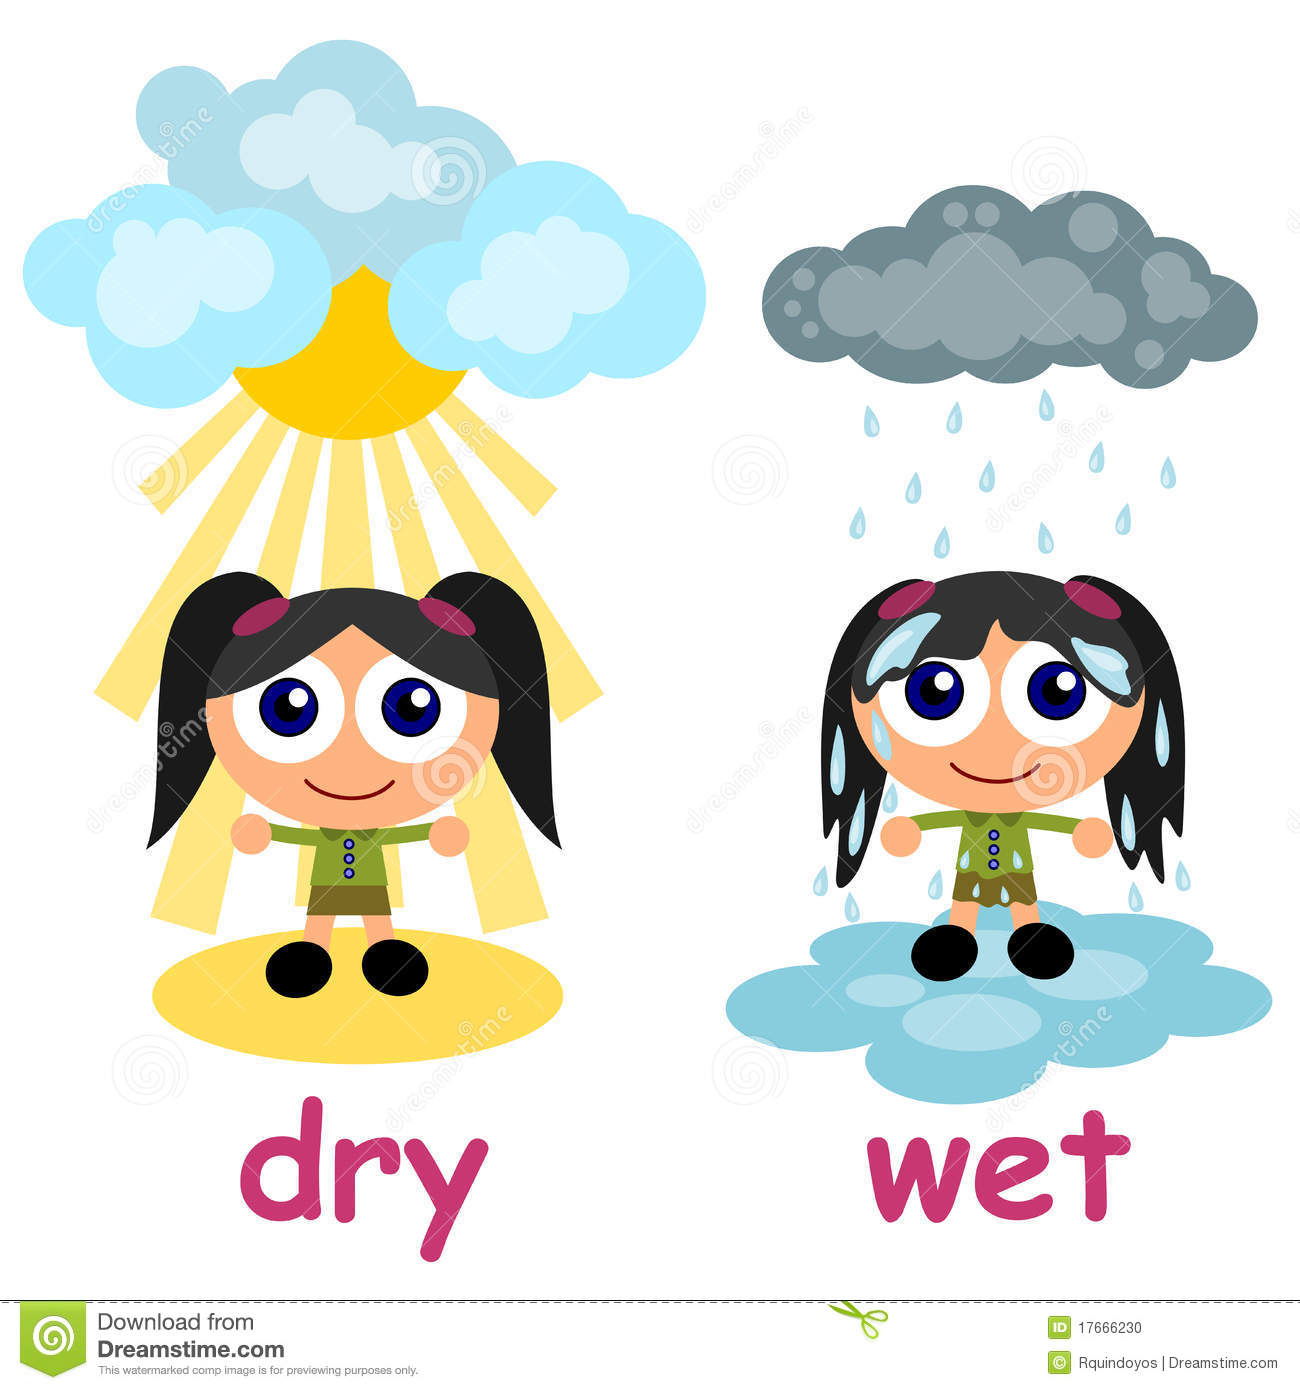 Wet and dry weather clipart banner transparent Dry Weather Clipart banner transparent